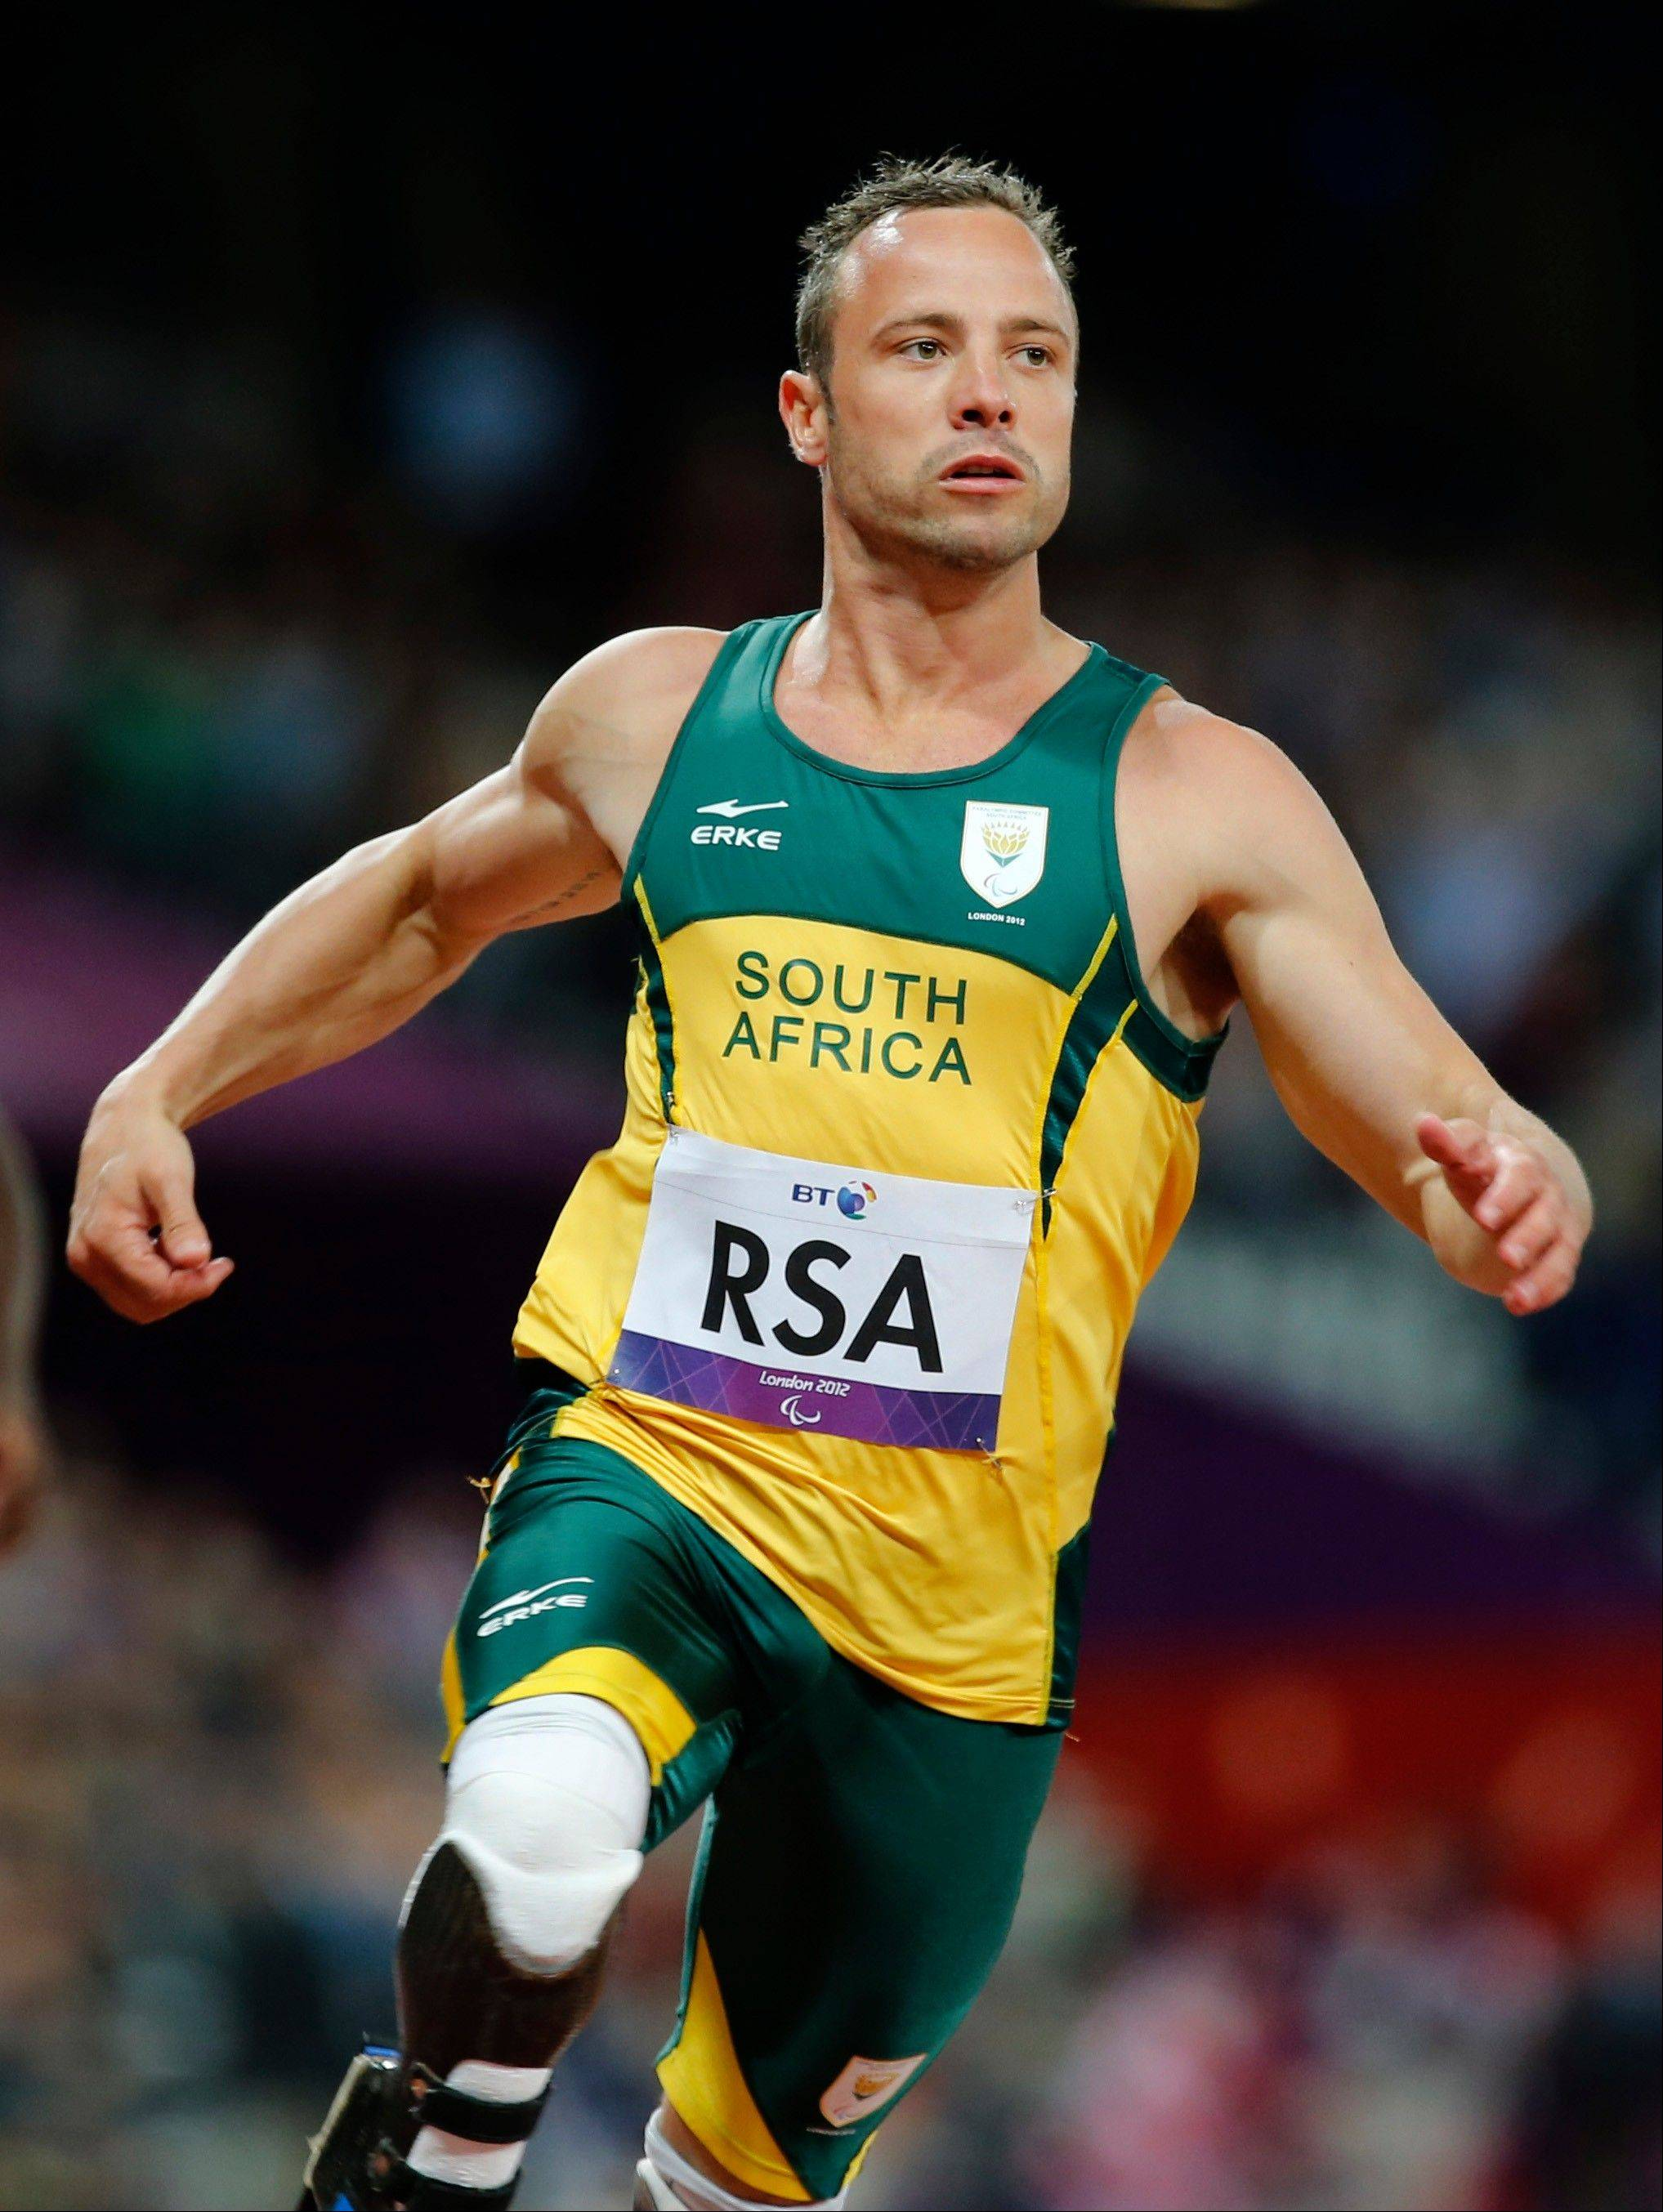 The saga of Oscar Pistorius took a sad and very bad turn for the worst Thursday with news that he has been charged with murdering his girlfriend.